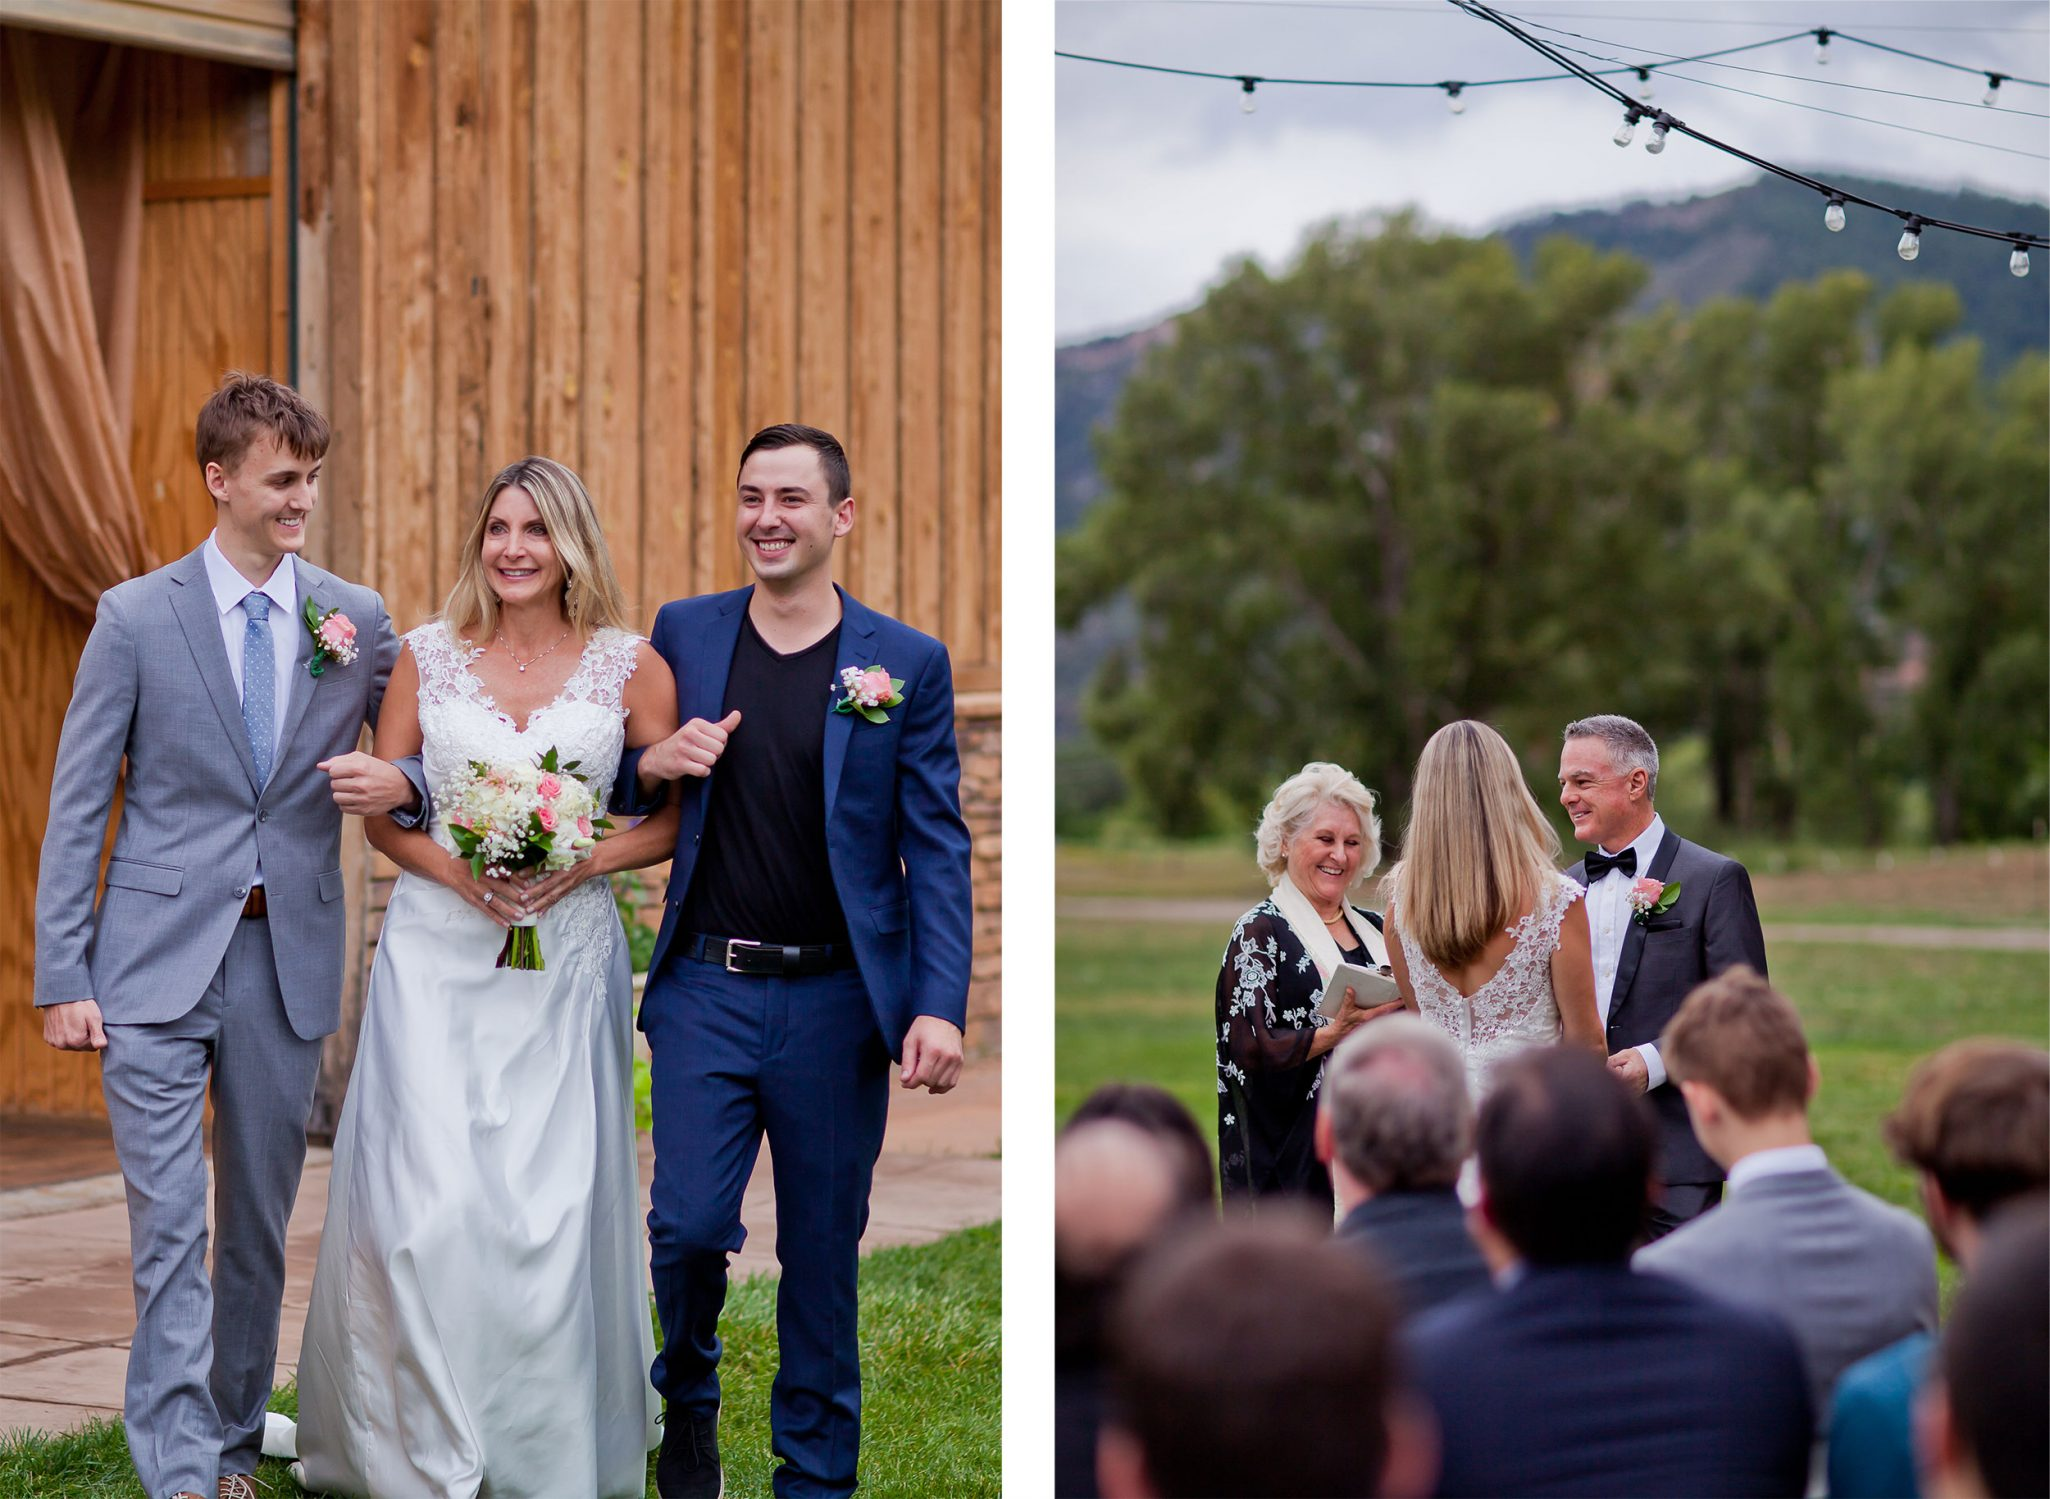 Ceremony | A Simple Durango Wedding Planned in Three Months at River Bend Ranch